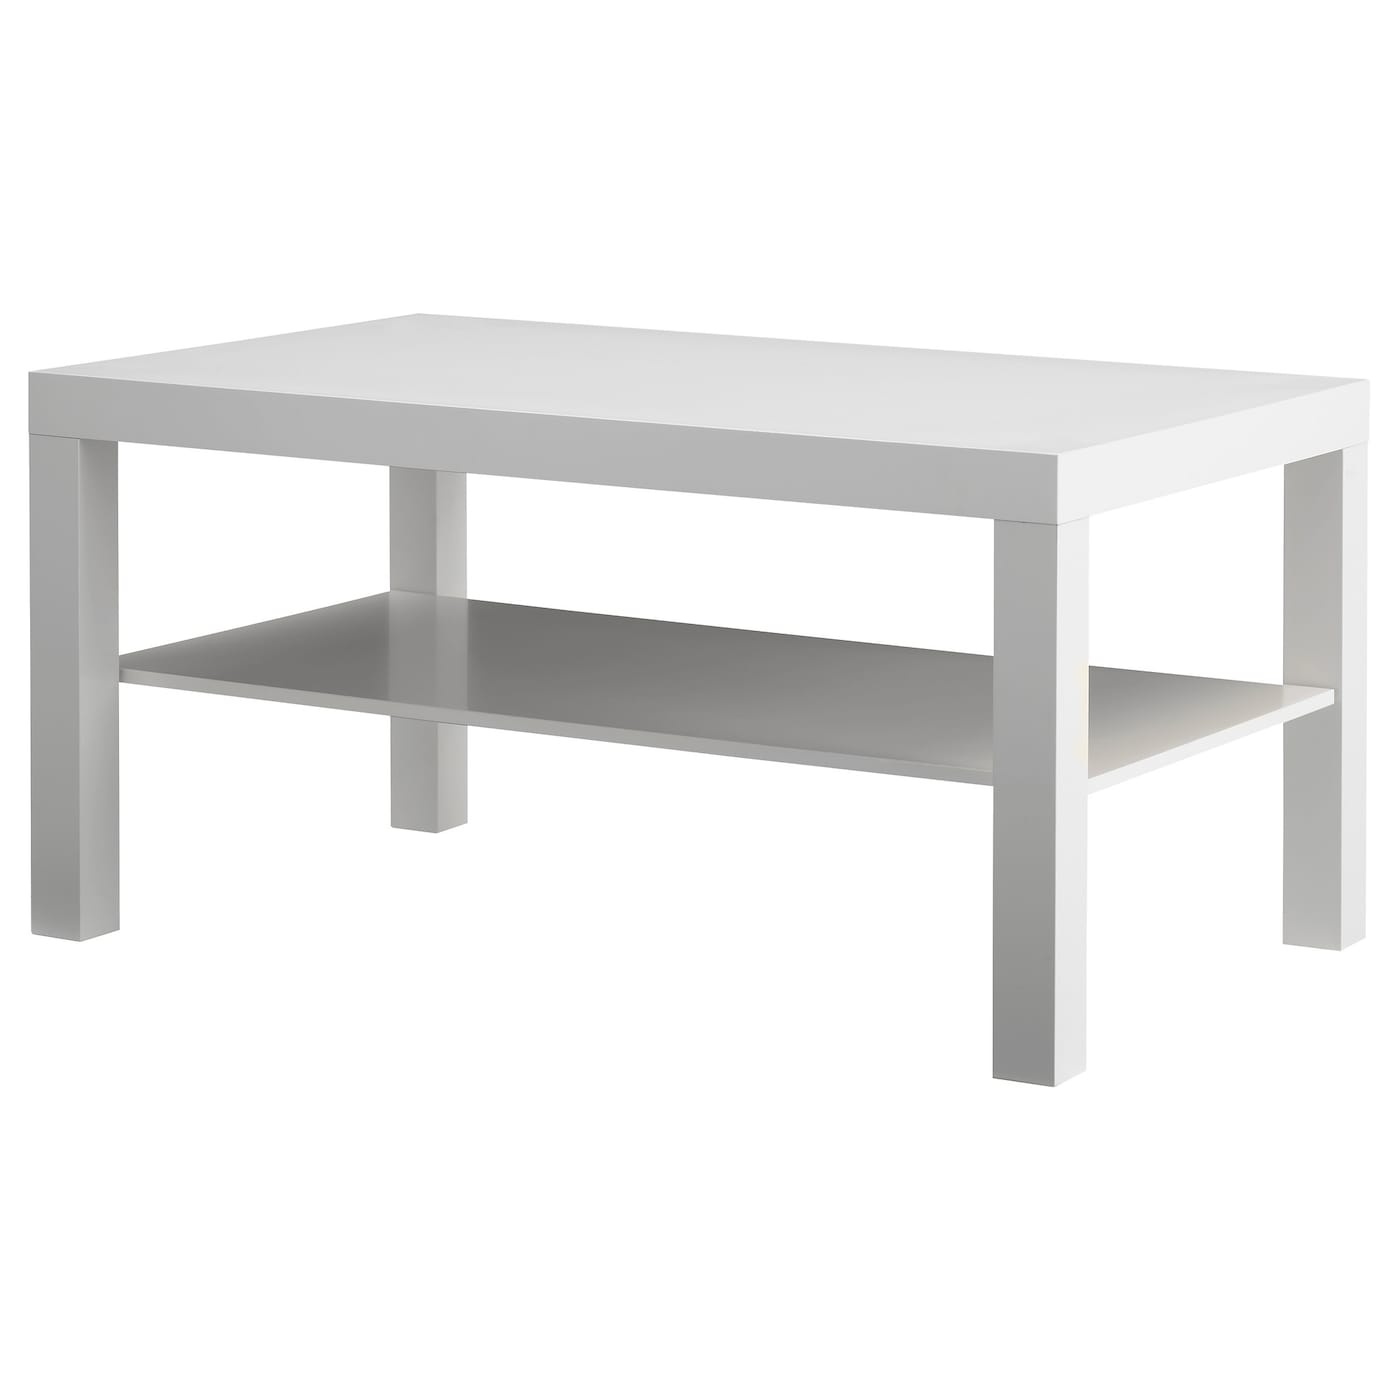 Lack coffee table white 90x55 cm ikea - Table basse coffre ikea ...